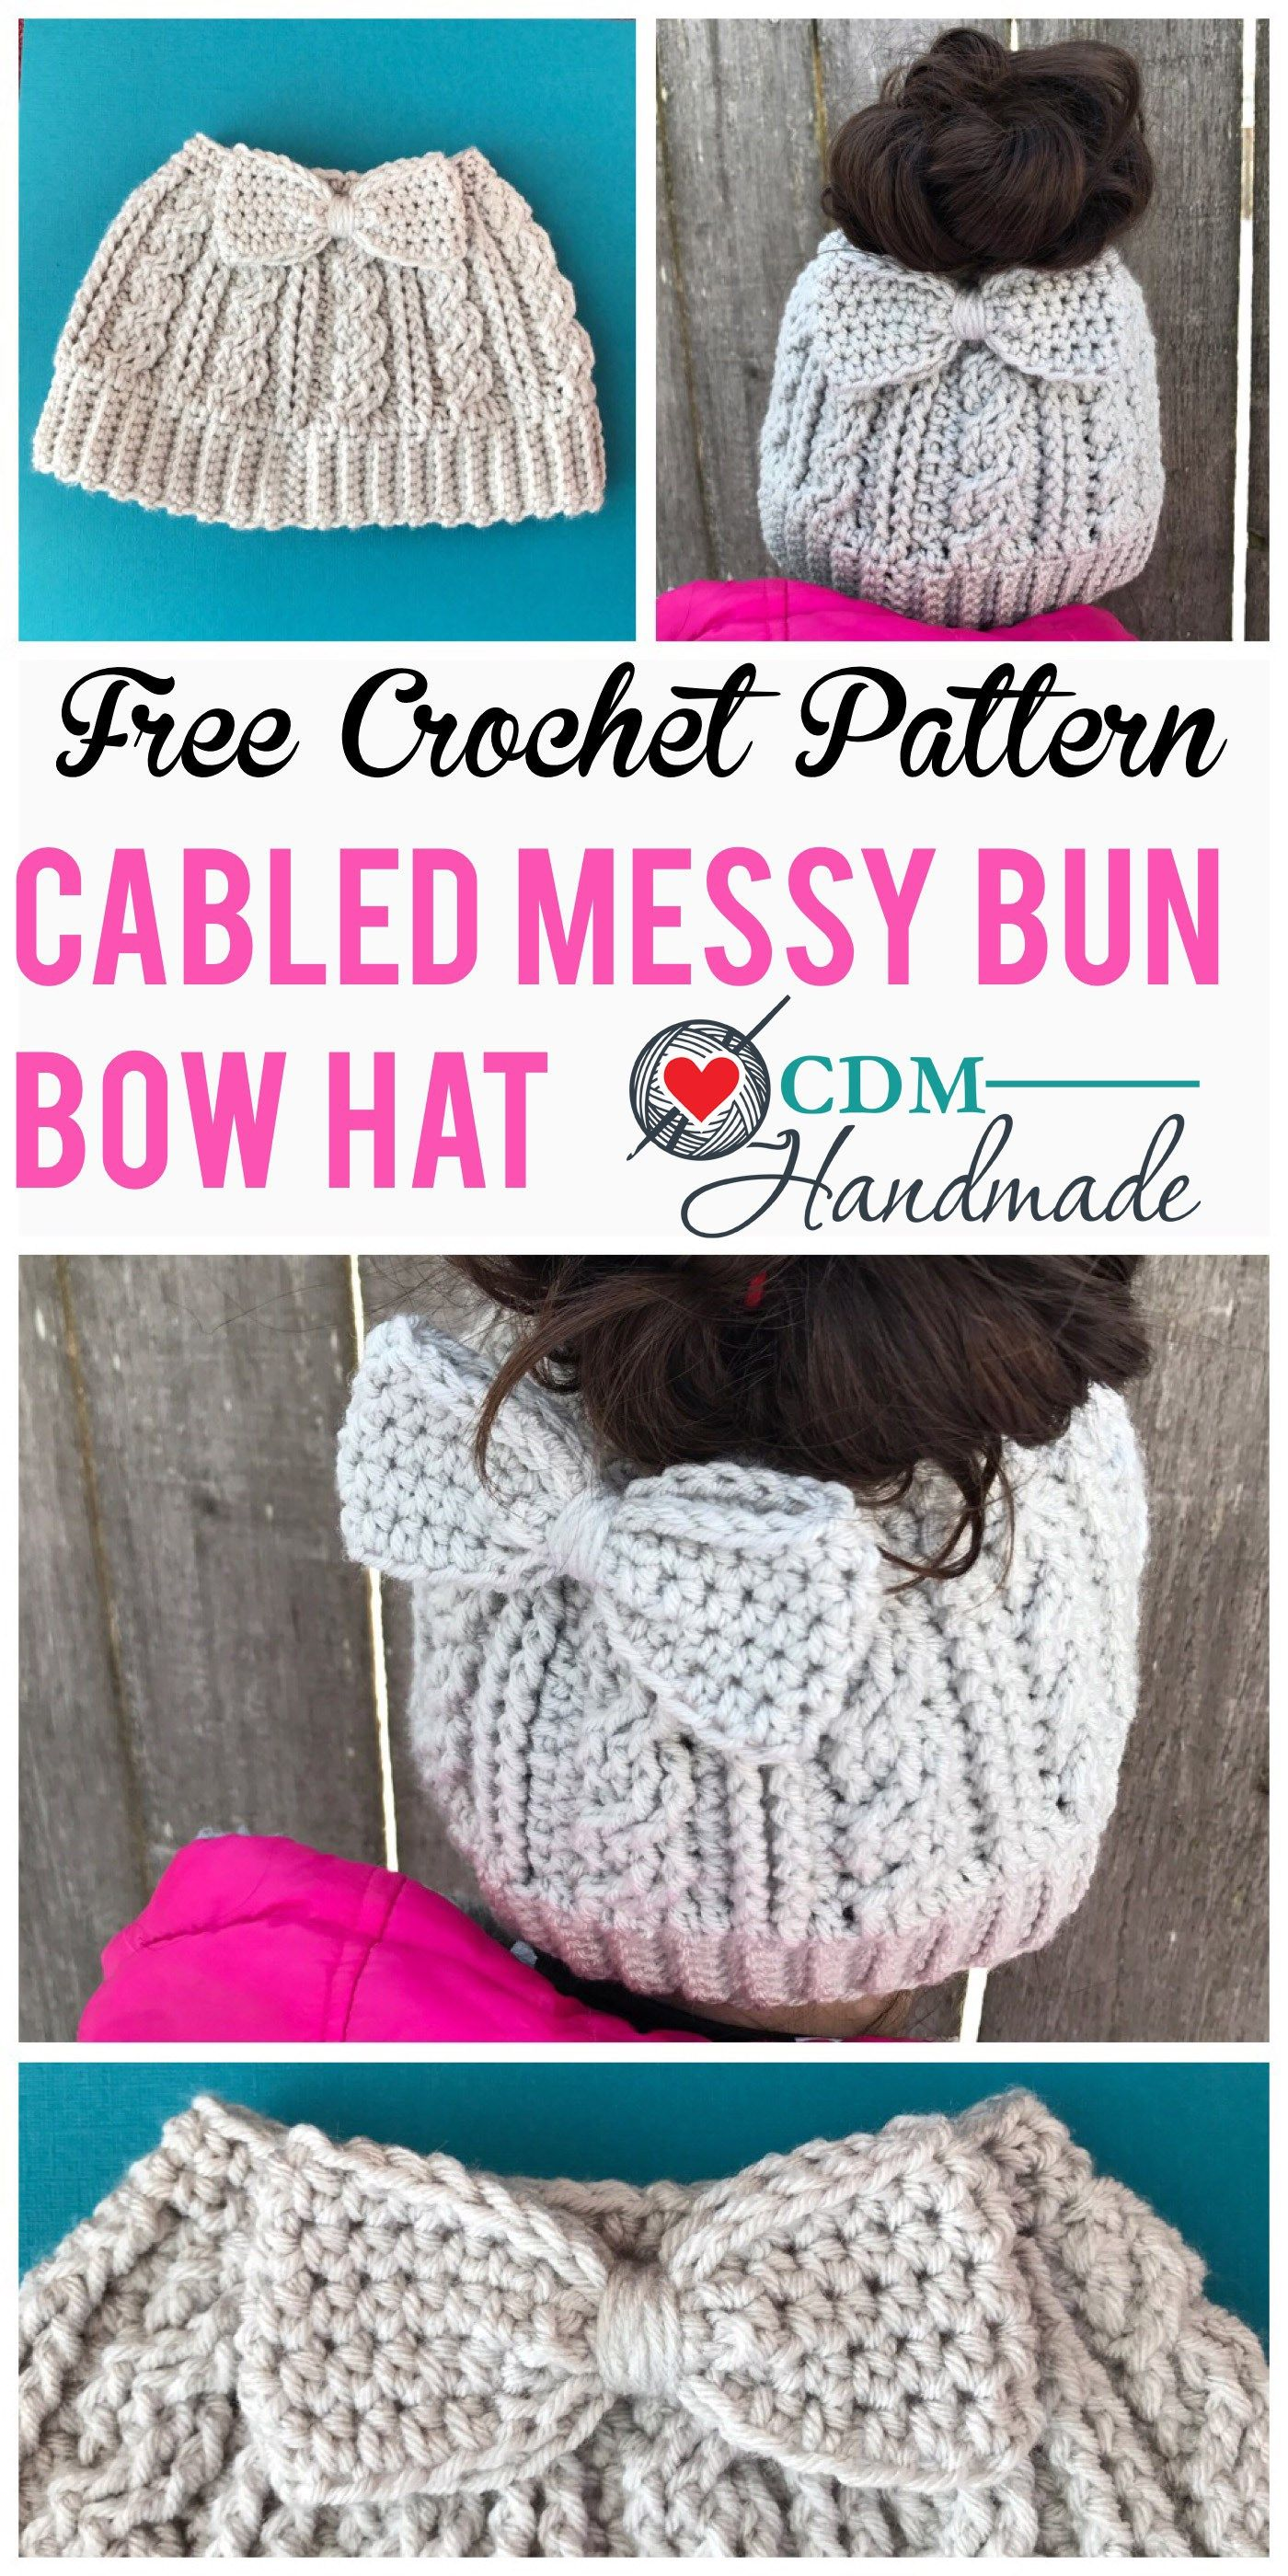 cabled messy bun bow hat pinterest | Crochet | Pinterest | Gorros ...